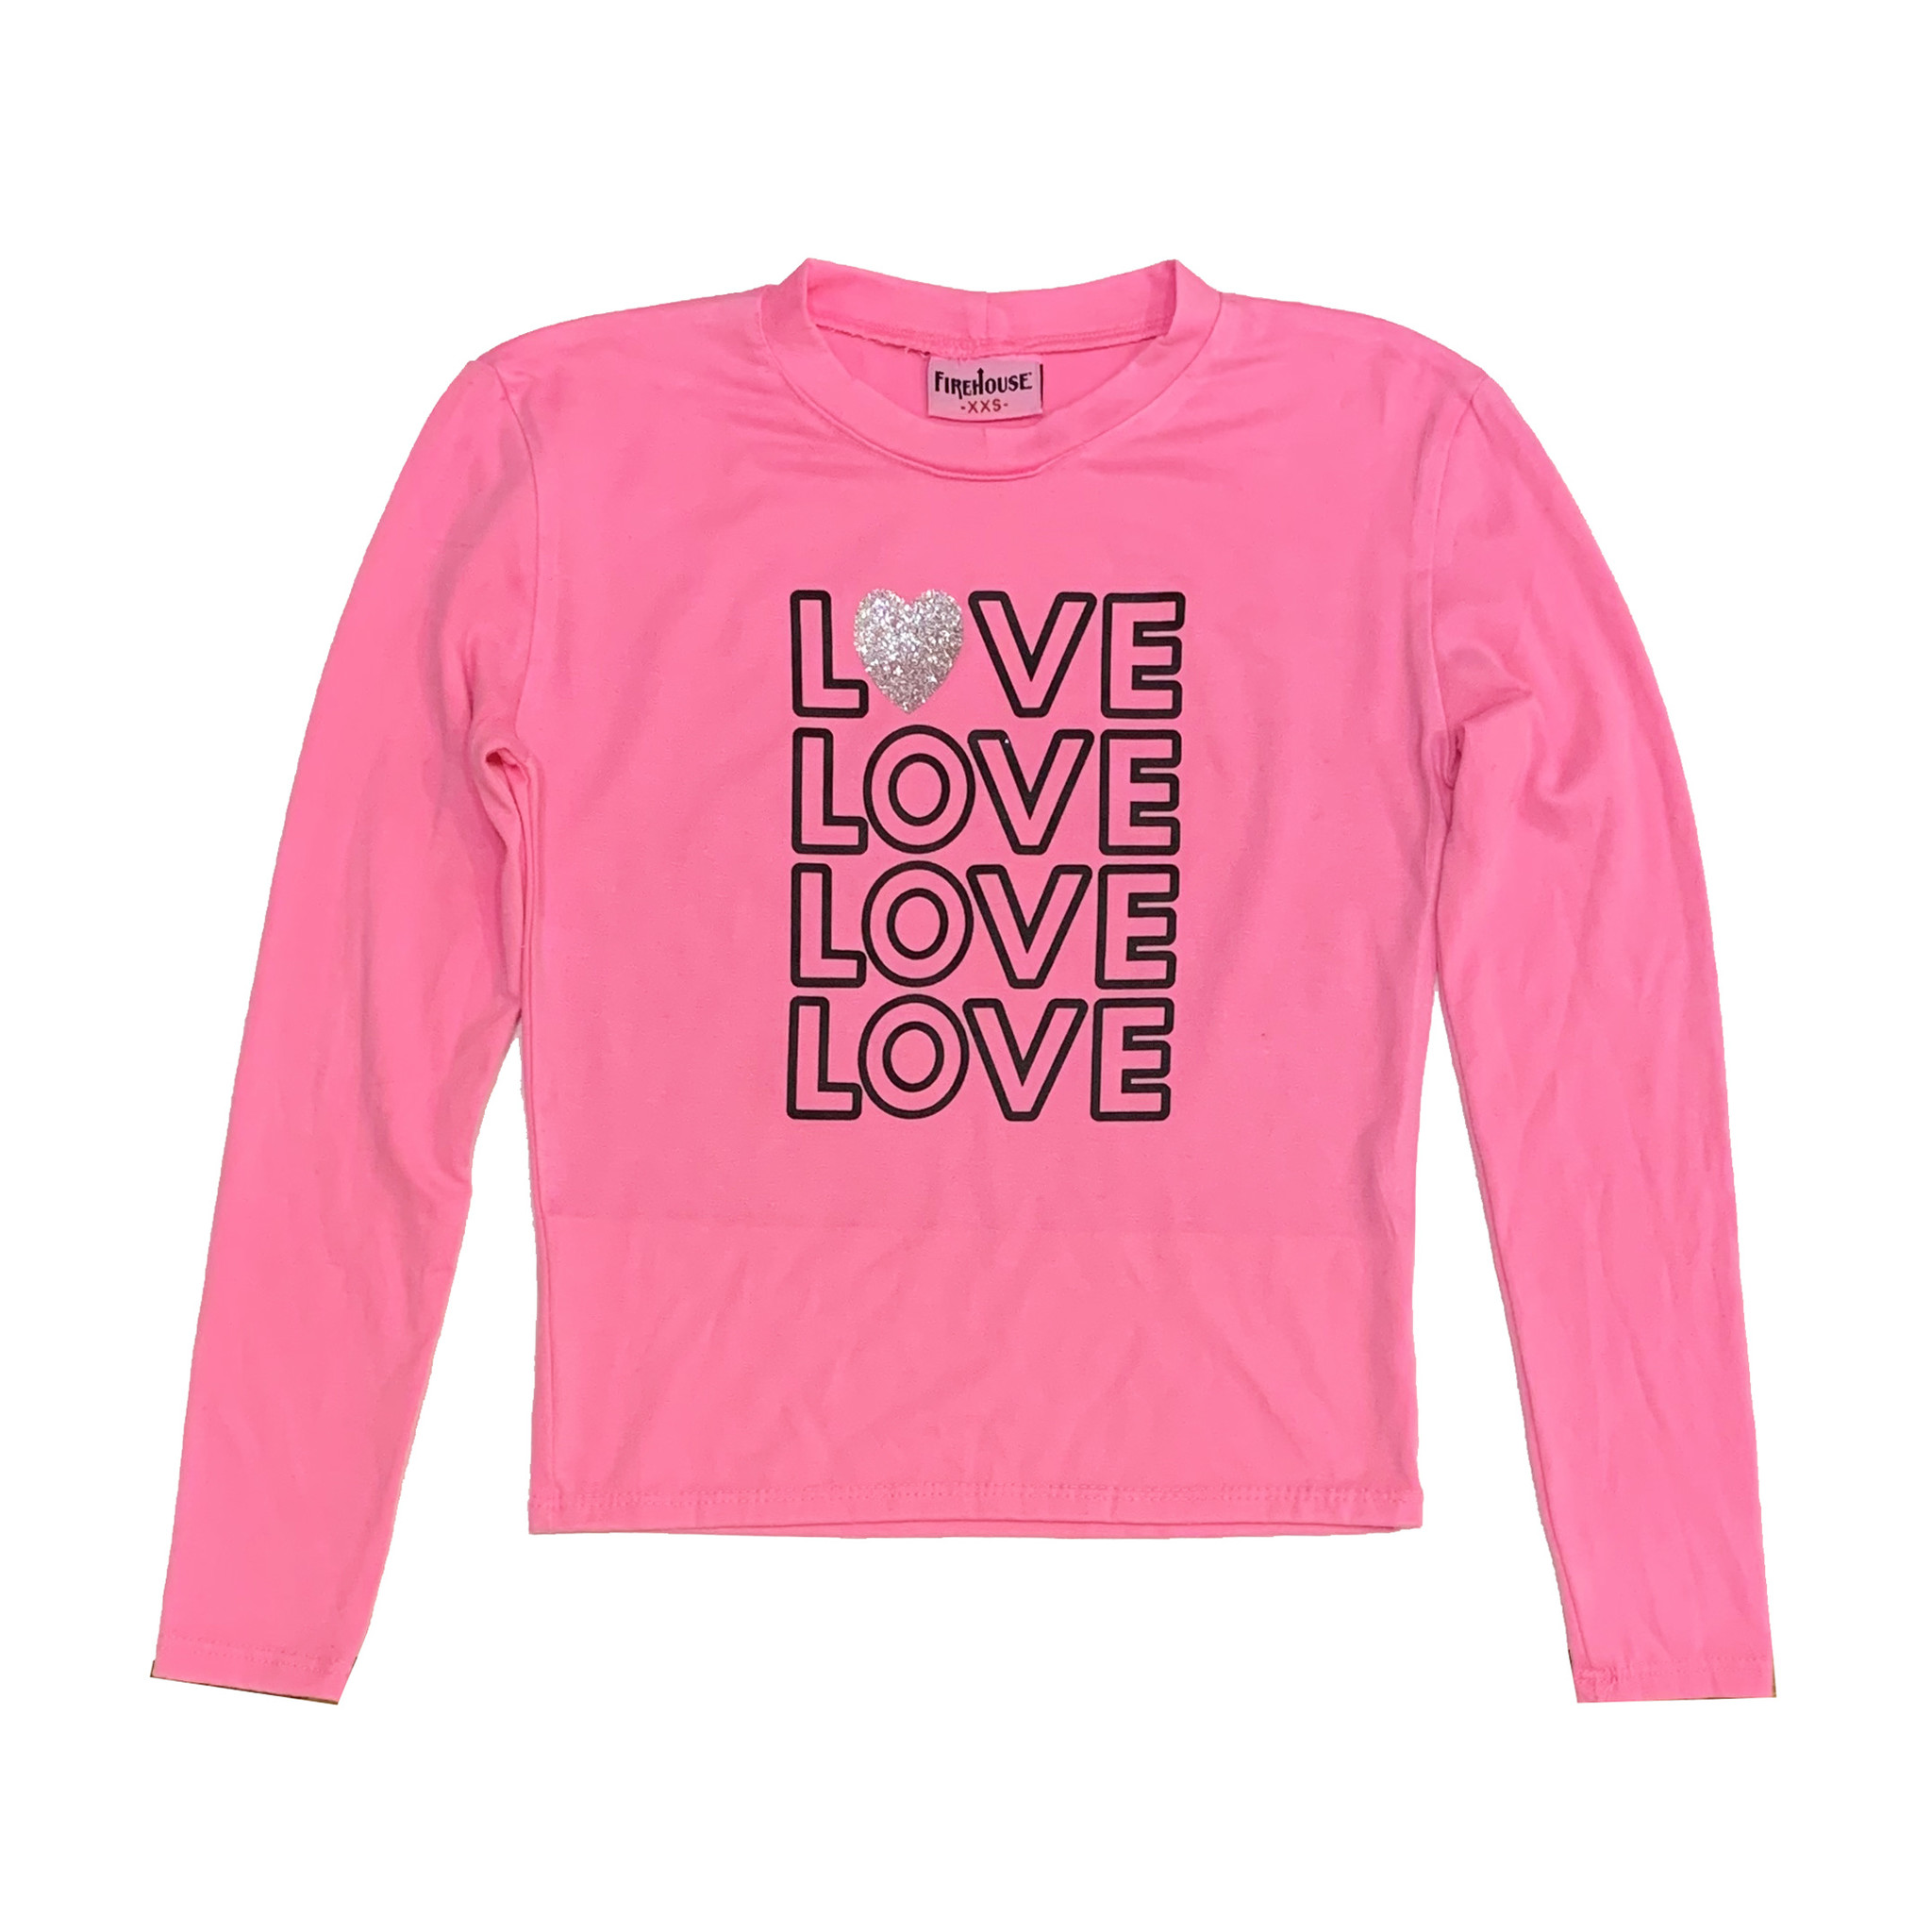 Firehouse Neon Pink Love Top